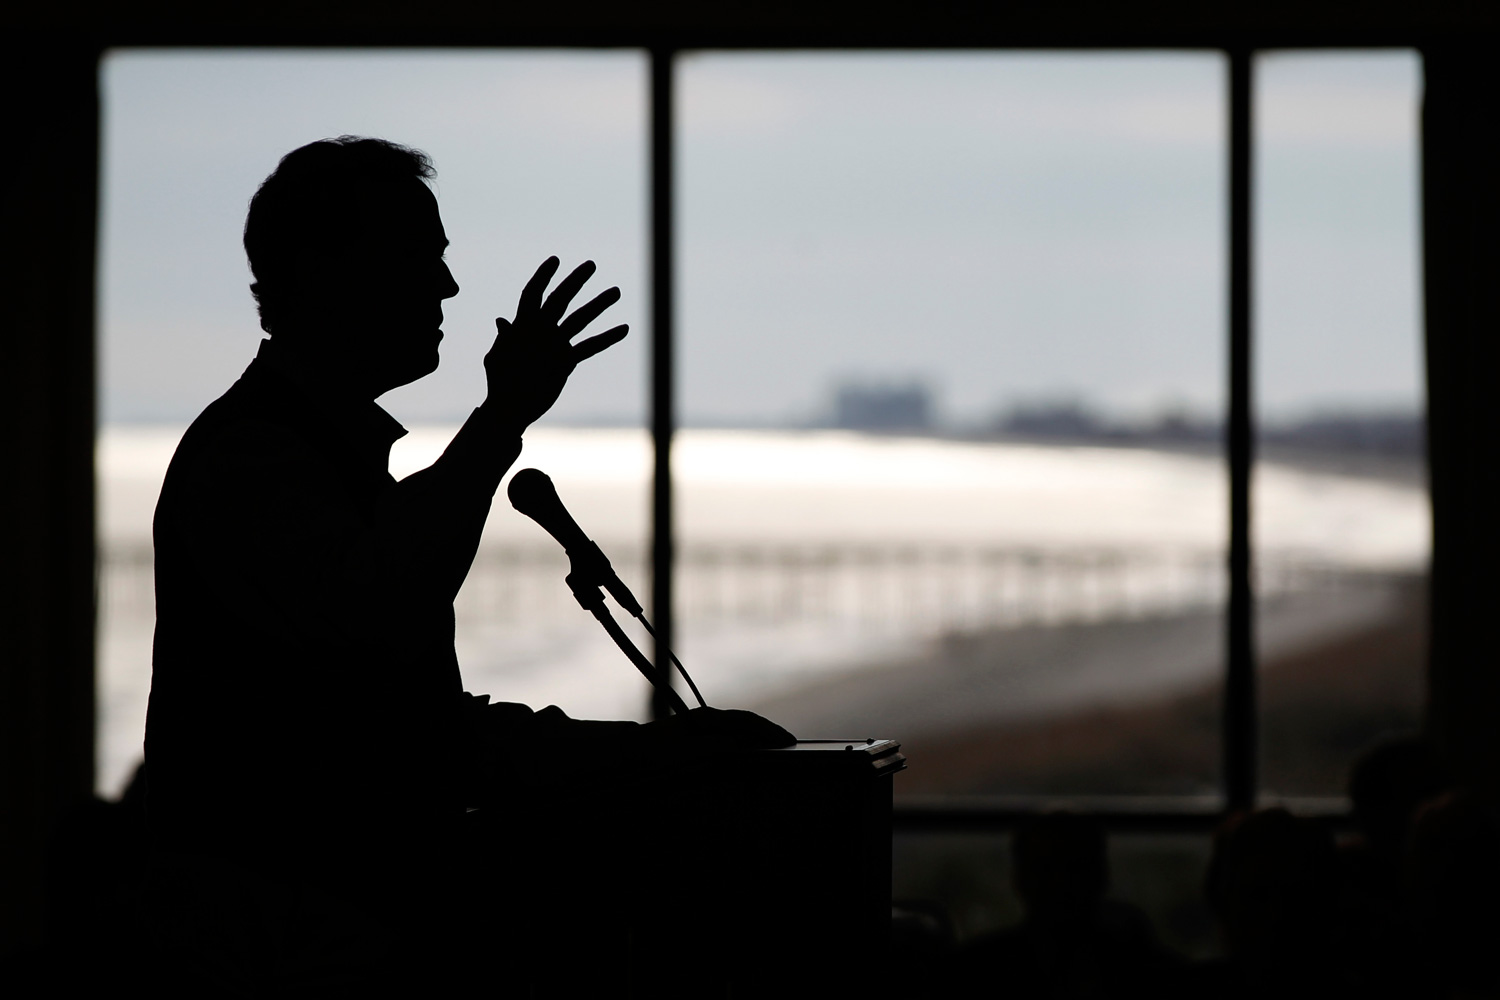 January 16, 2012. Republican presidential candidate and former Pennsylvania Senator Rick Santorum speaks during the Tea Party Convention in Myrtle Beach, S.C.